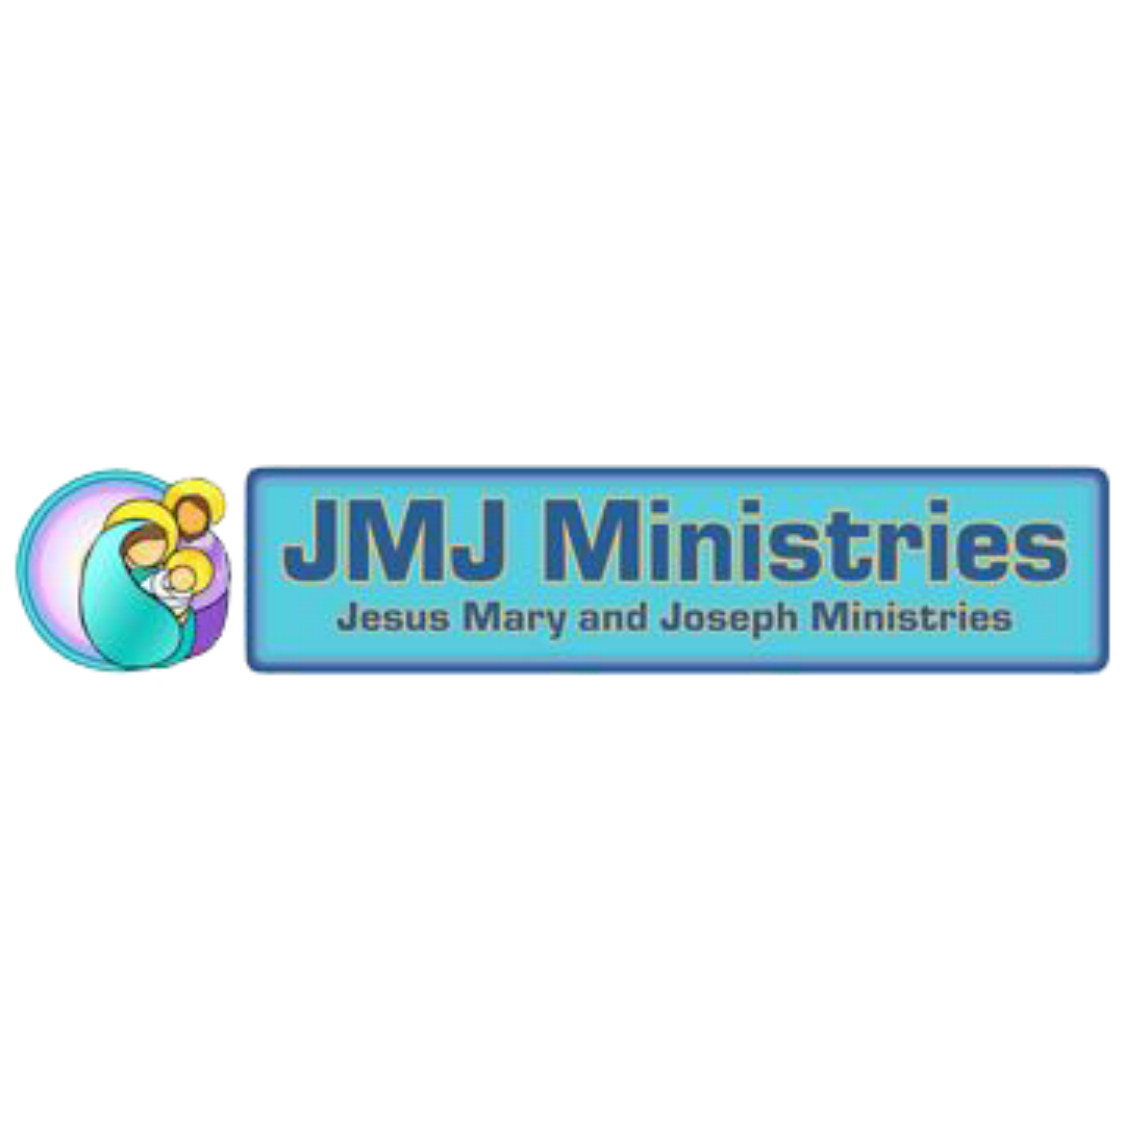 Jesus Mary and Joseph Ministries